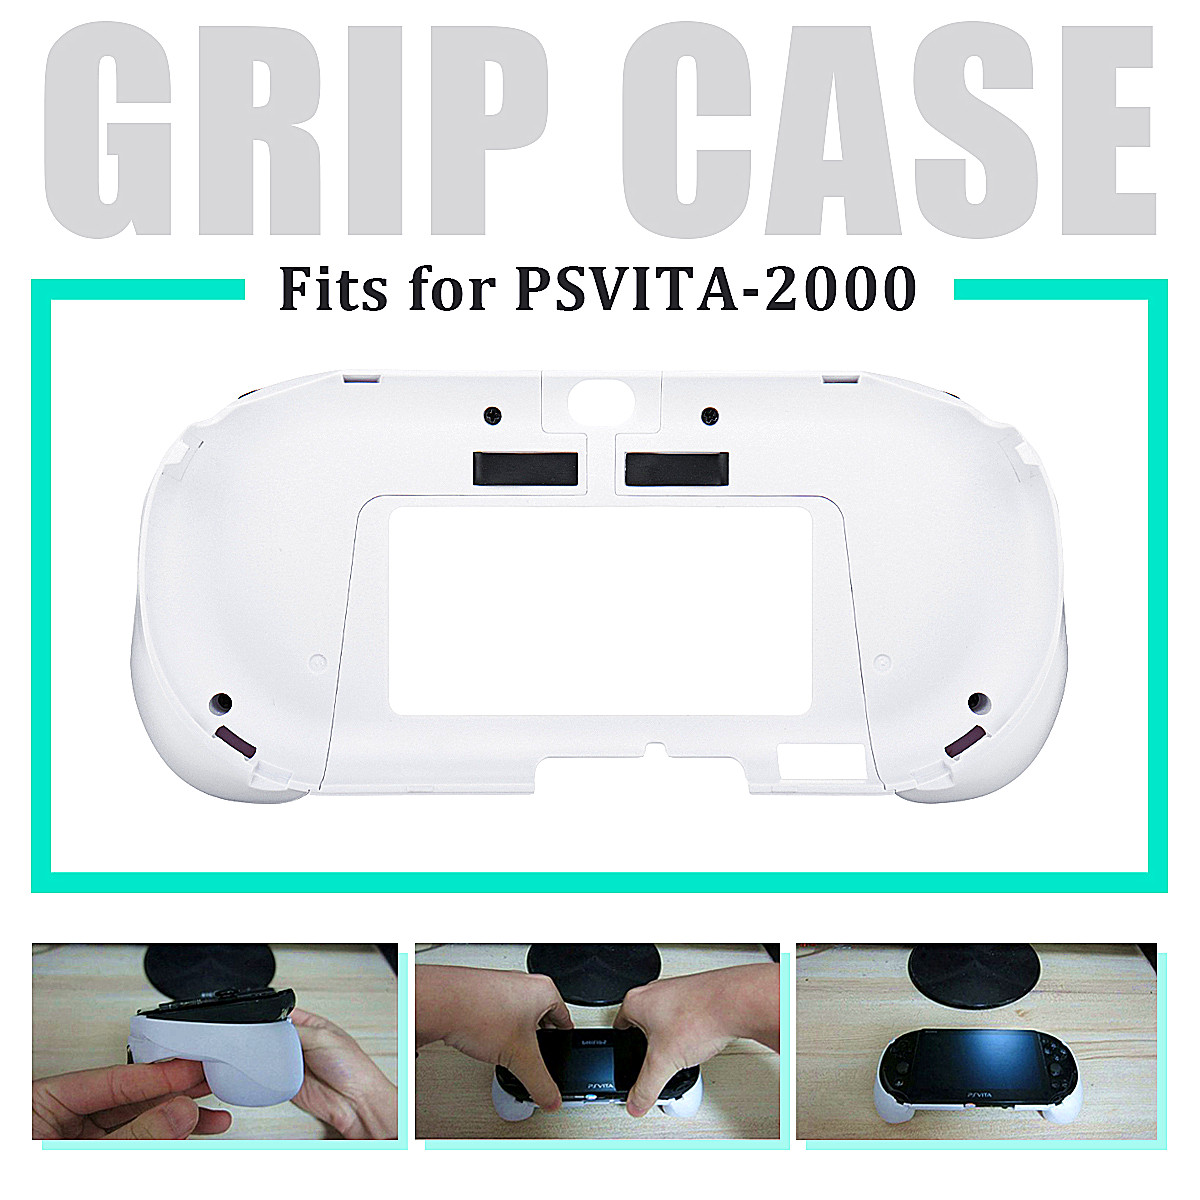 L2 R2 Trigger Game Console Host Grip Holder Handle Bracket Case For PS VITA 2000